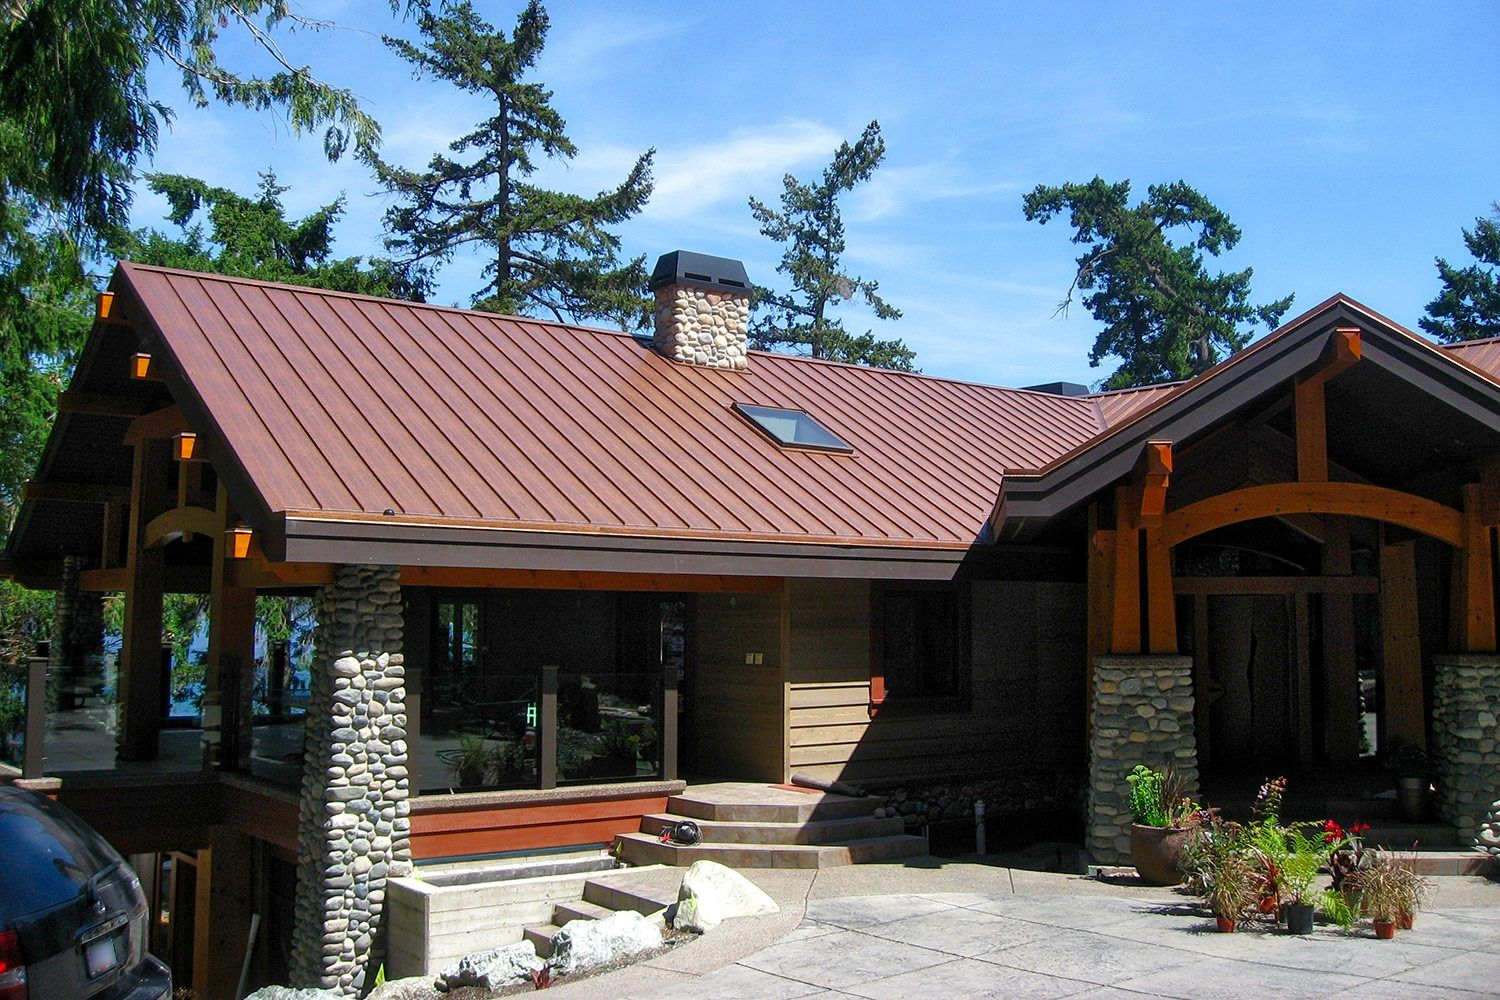 Brown Gutter Red Roof Image Result For Dark Red Standing Seam Roof Standing Seam Metal Roof Standing Seam Roof